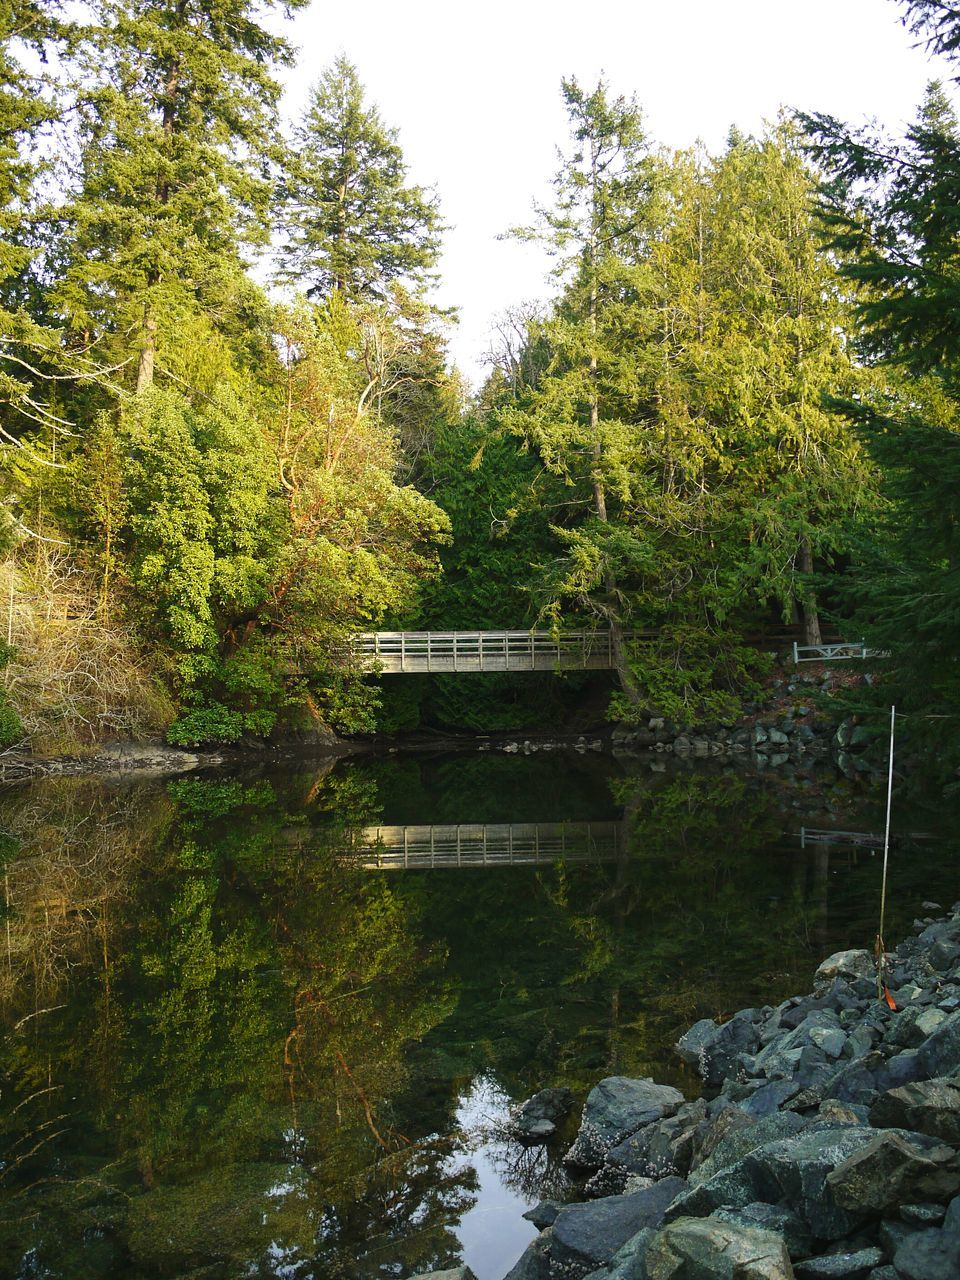 tree, reflection, water, nature, tranquil scene, tranquility, outdoors, no people, growth, beauty in nature, day, bridge - man made structure, lake, scenics, forest, sky